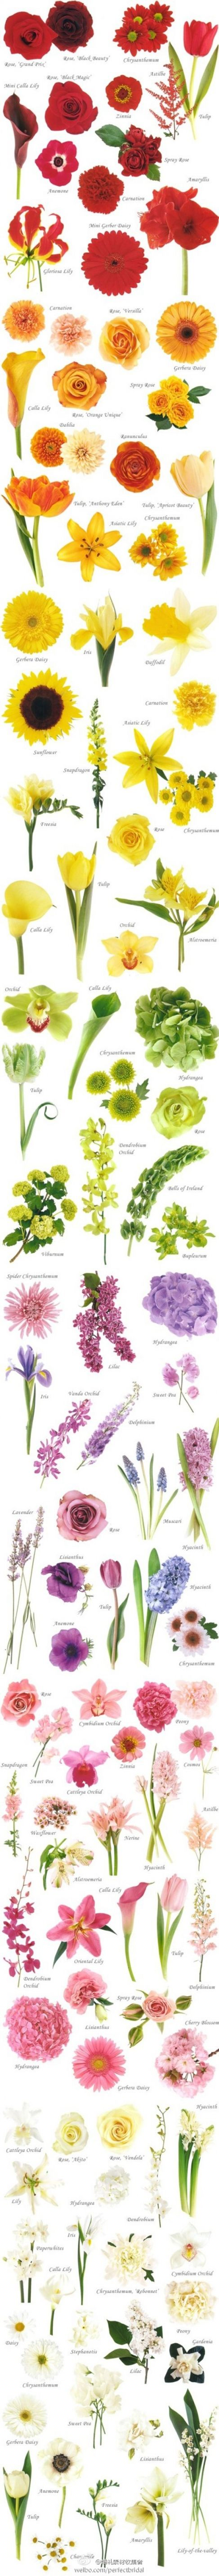 A colorful glossary of flowers.